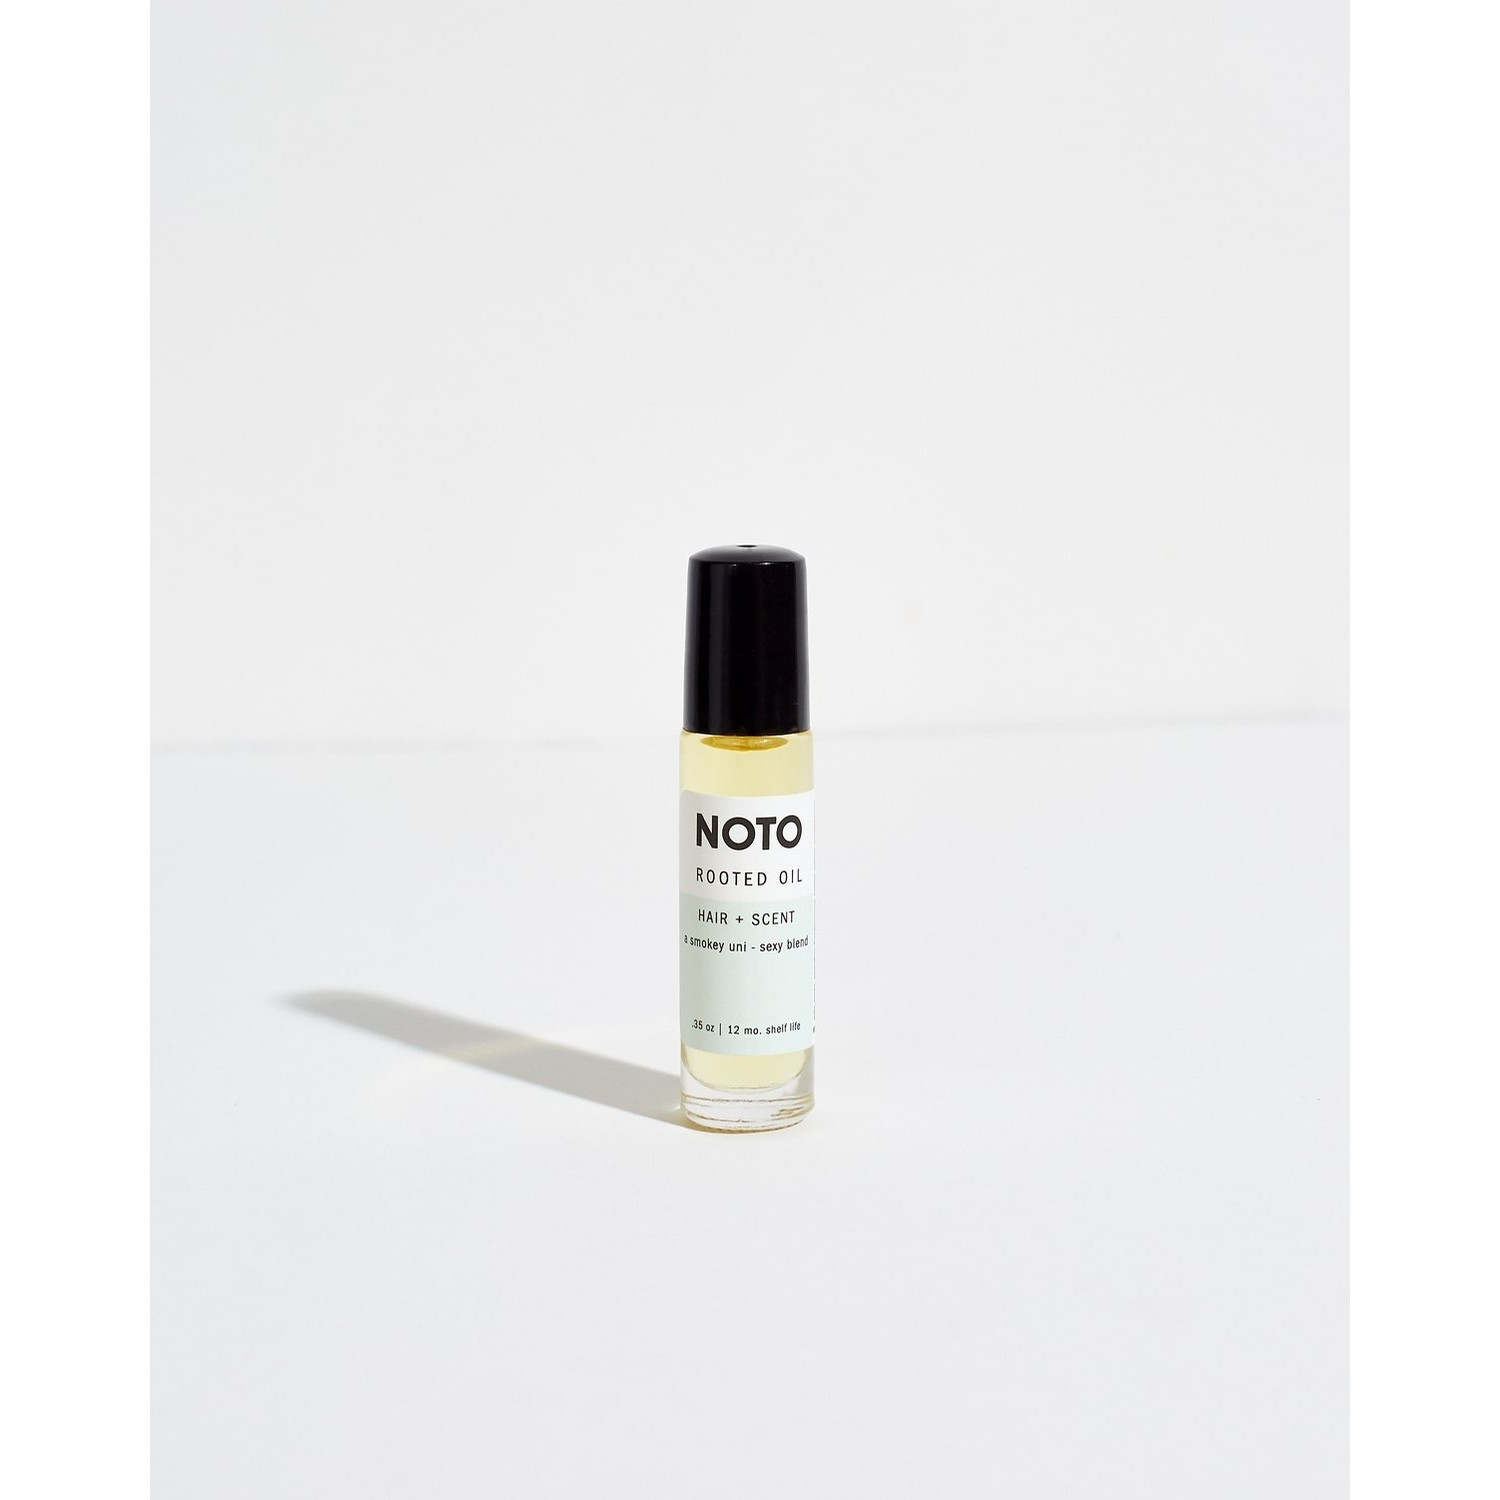 Noto botanics Rooted Oil Roller